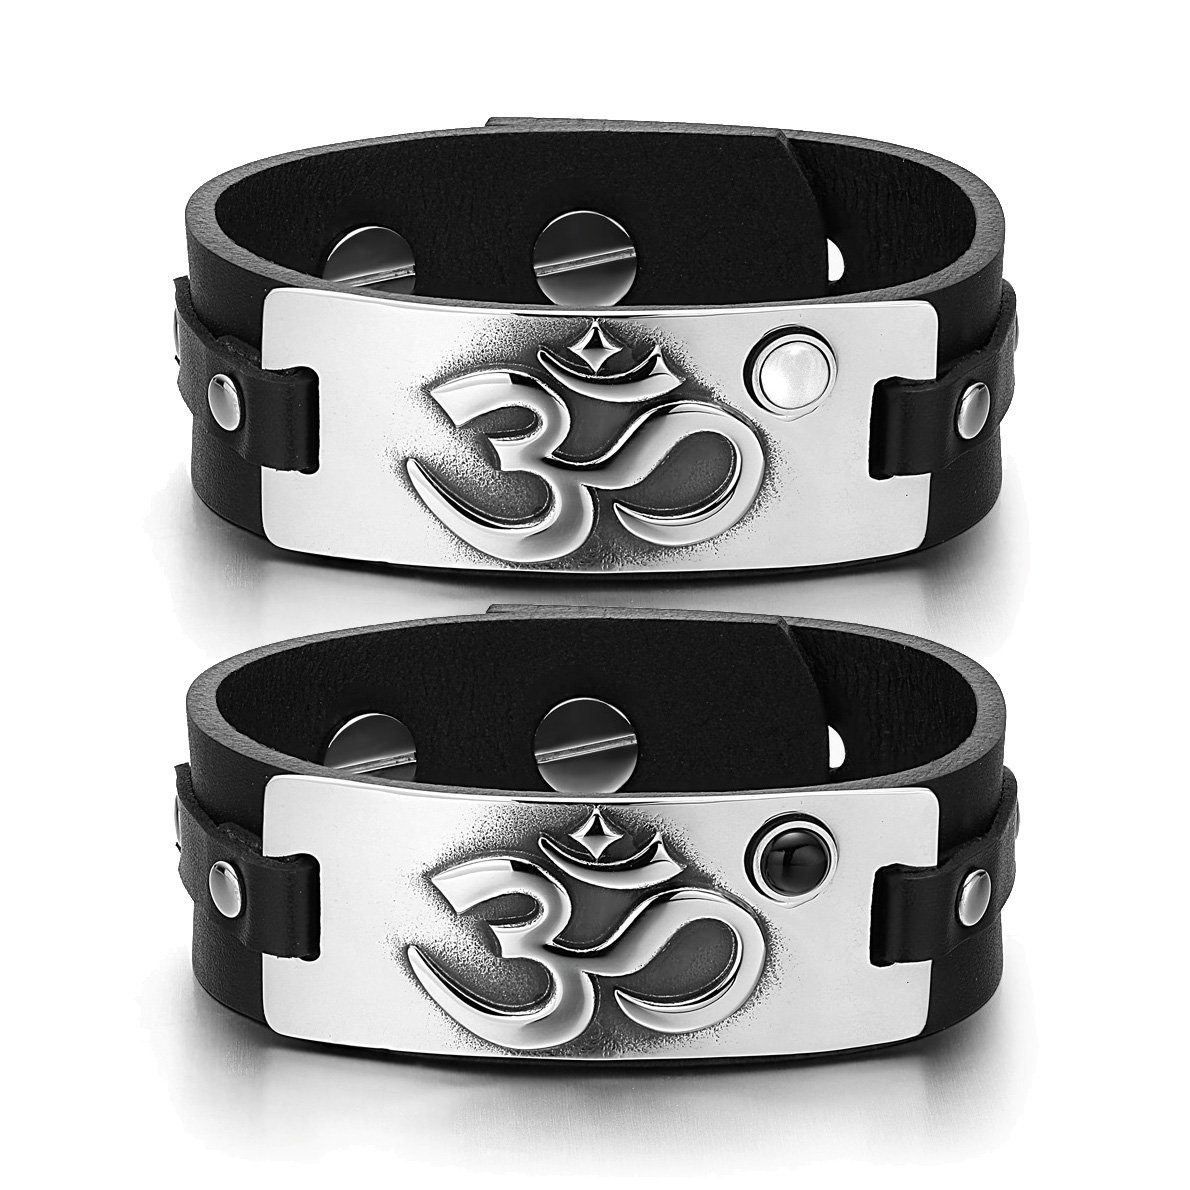 OM Ancient Tibetan Amulets Couples White Simulated Cats Eye Simulated Onyx Black Leather Bracelets